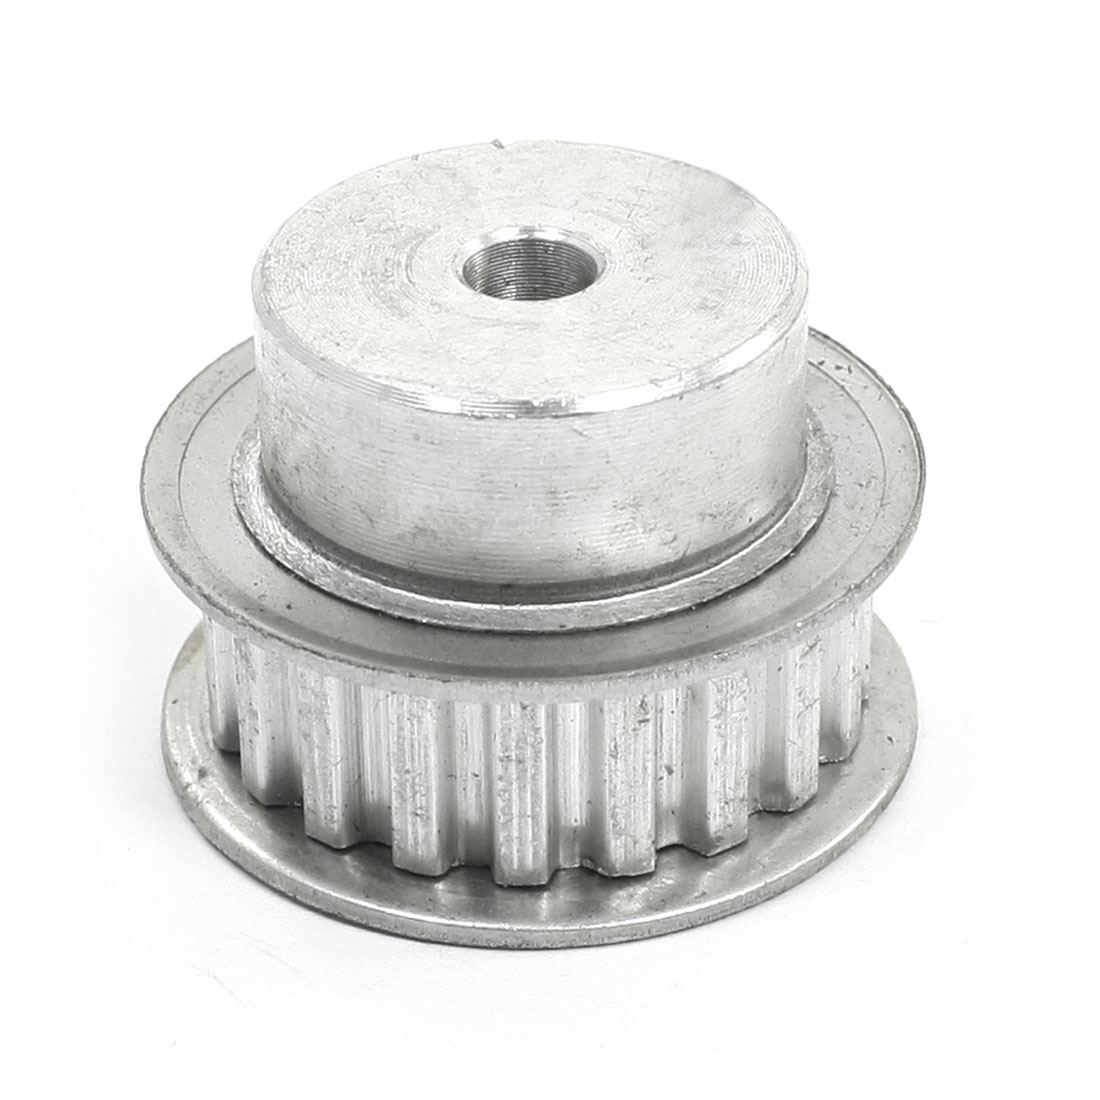 Stepper Motor 20 Teeth 6mm Bore XL Type Aluminum Timing Belt Pulley